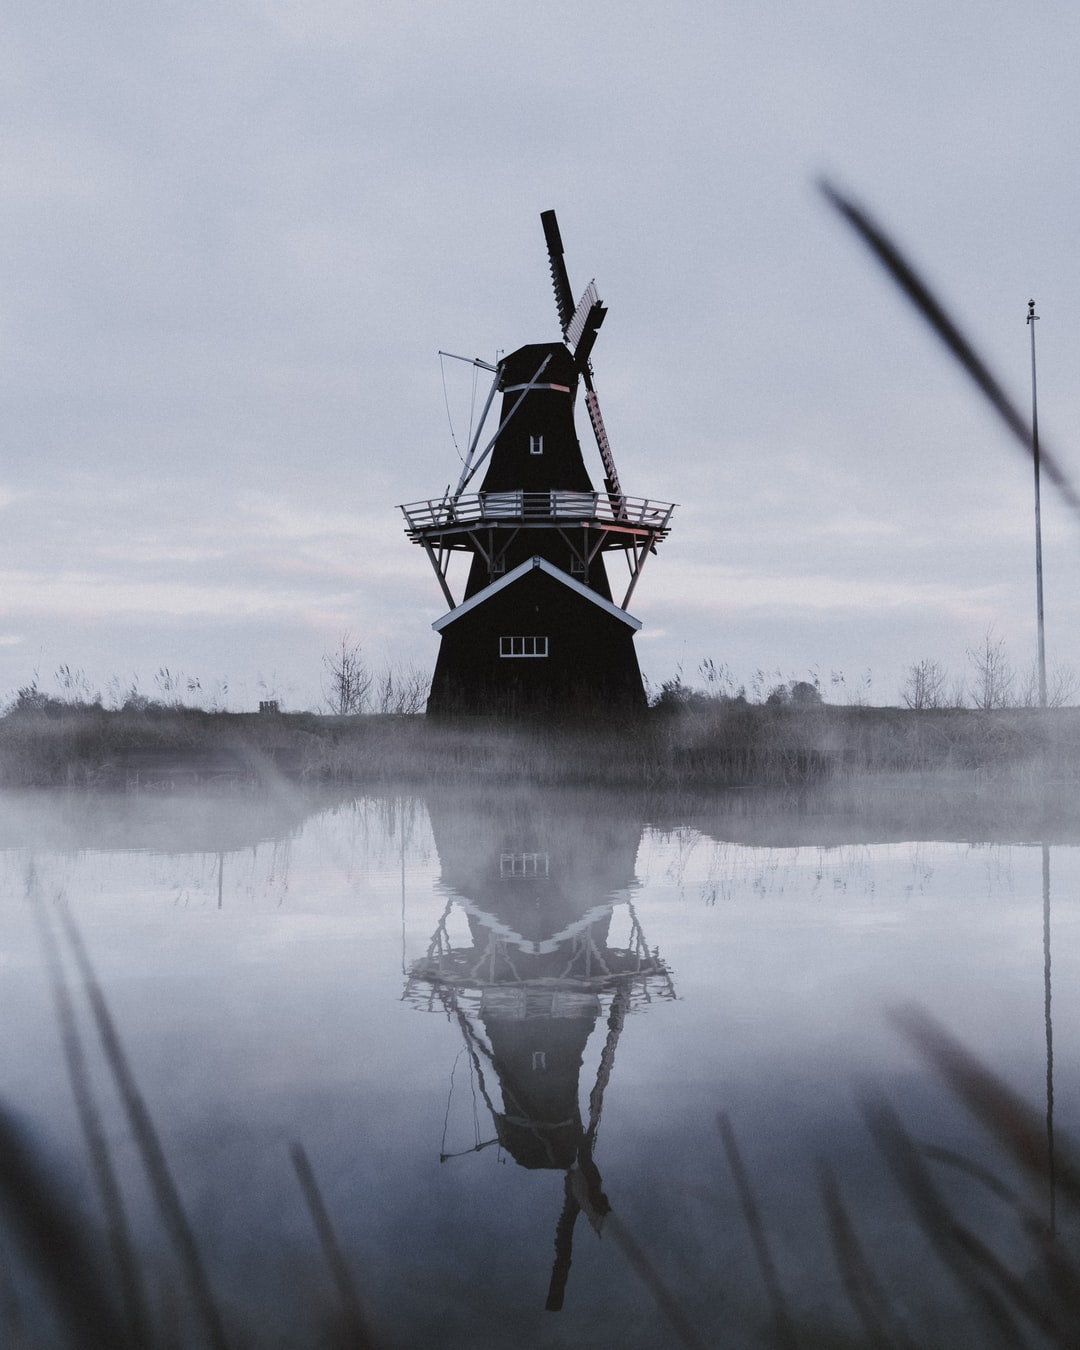 When i woke up early and looked out the window i saw the mist coming of the water. I grabbed my camera and ran to the windmill in my village. I've been wanting to photograph this windmill everyday since I rode by this on my way to school. When I saw the mist i knew it was the part of my photo which i was looking for for so long.